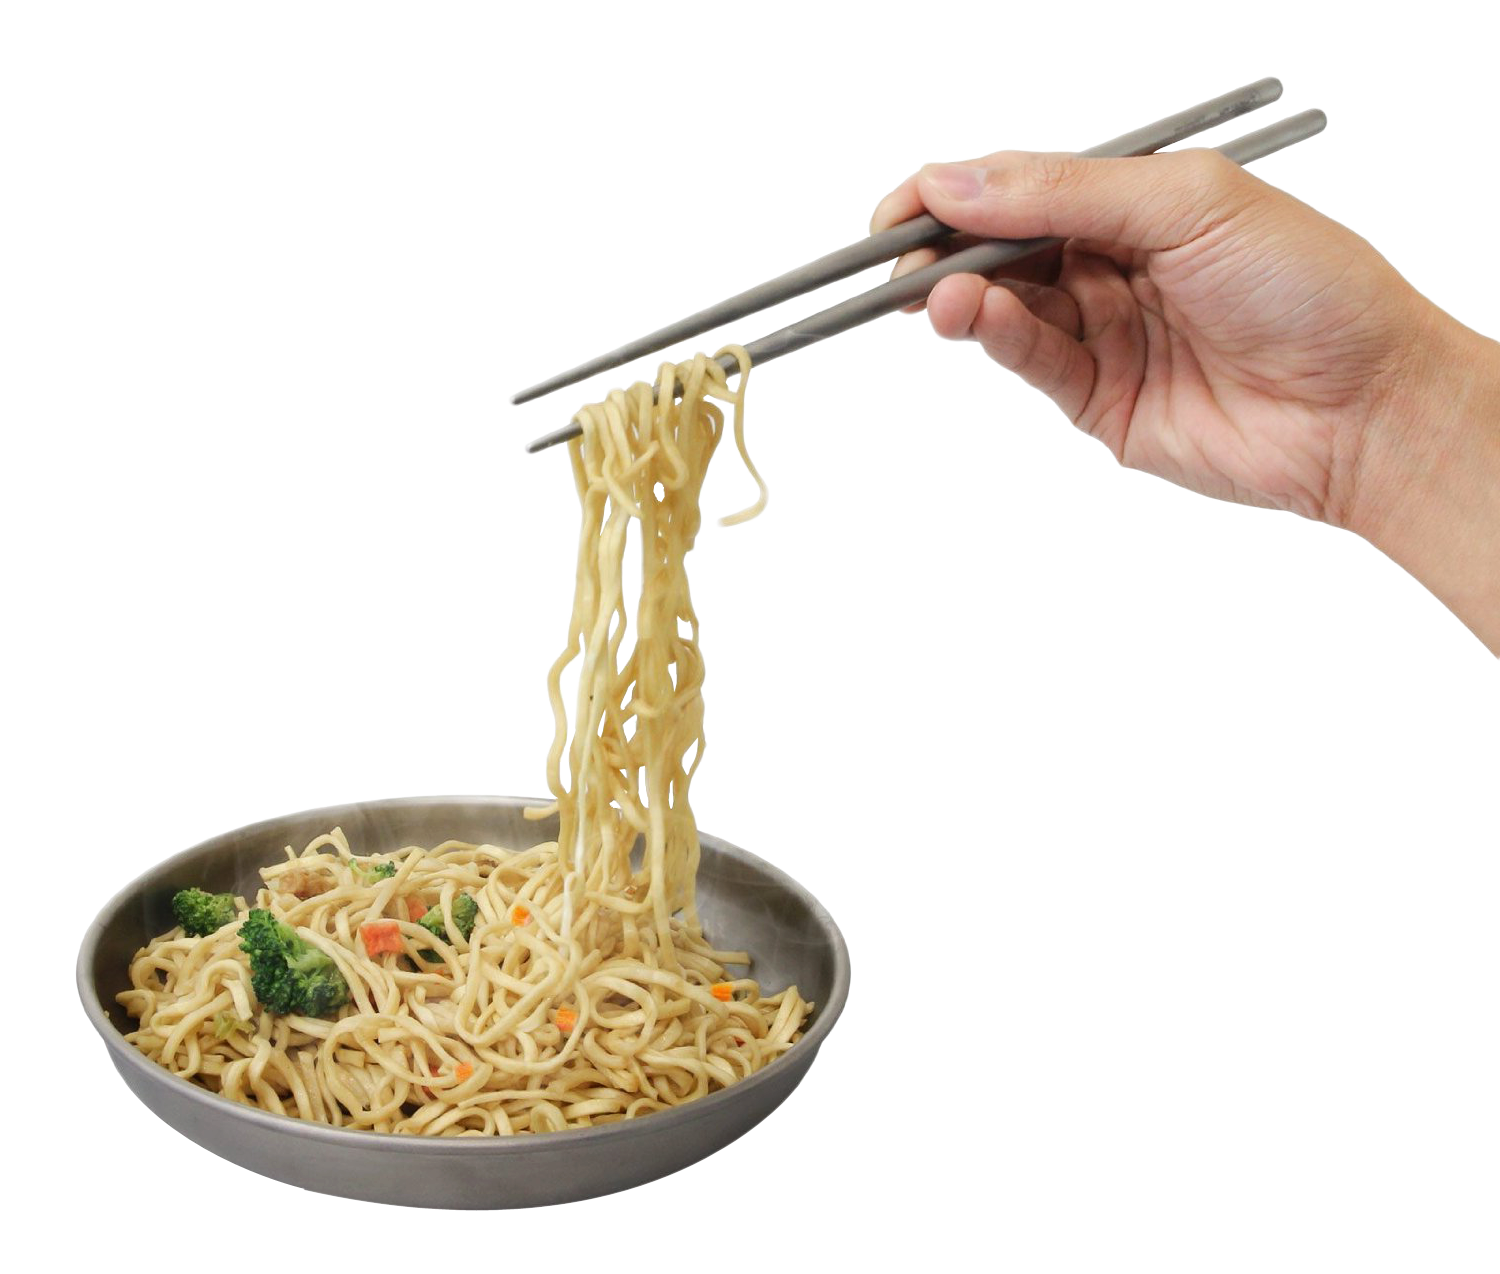 Hand holding Noodles with Chopsticks PNG Image